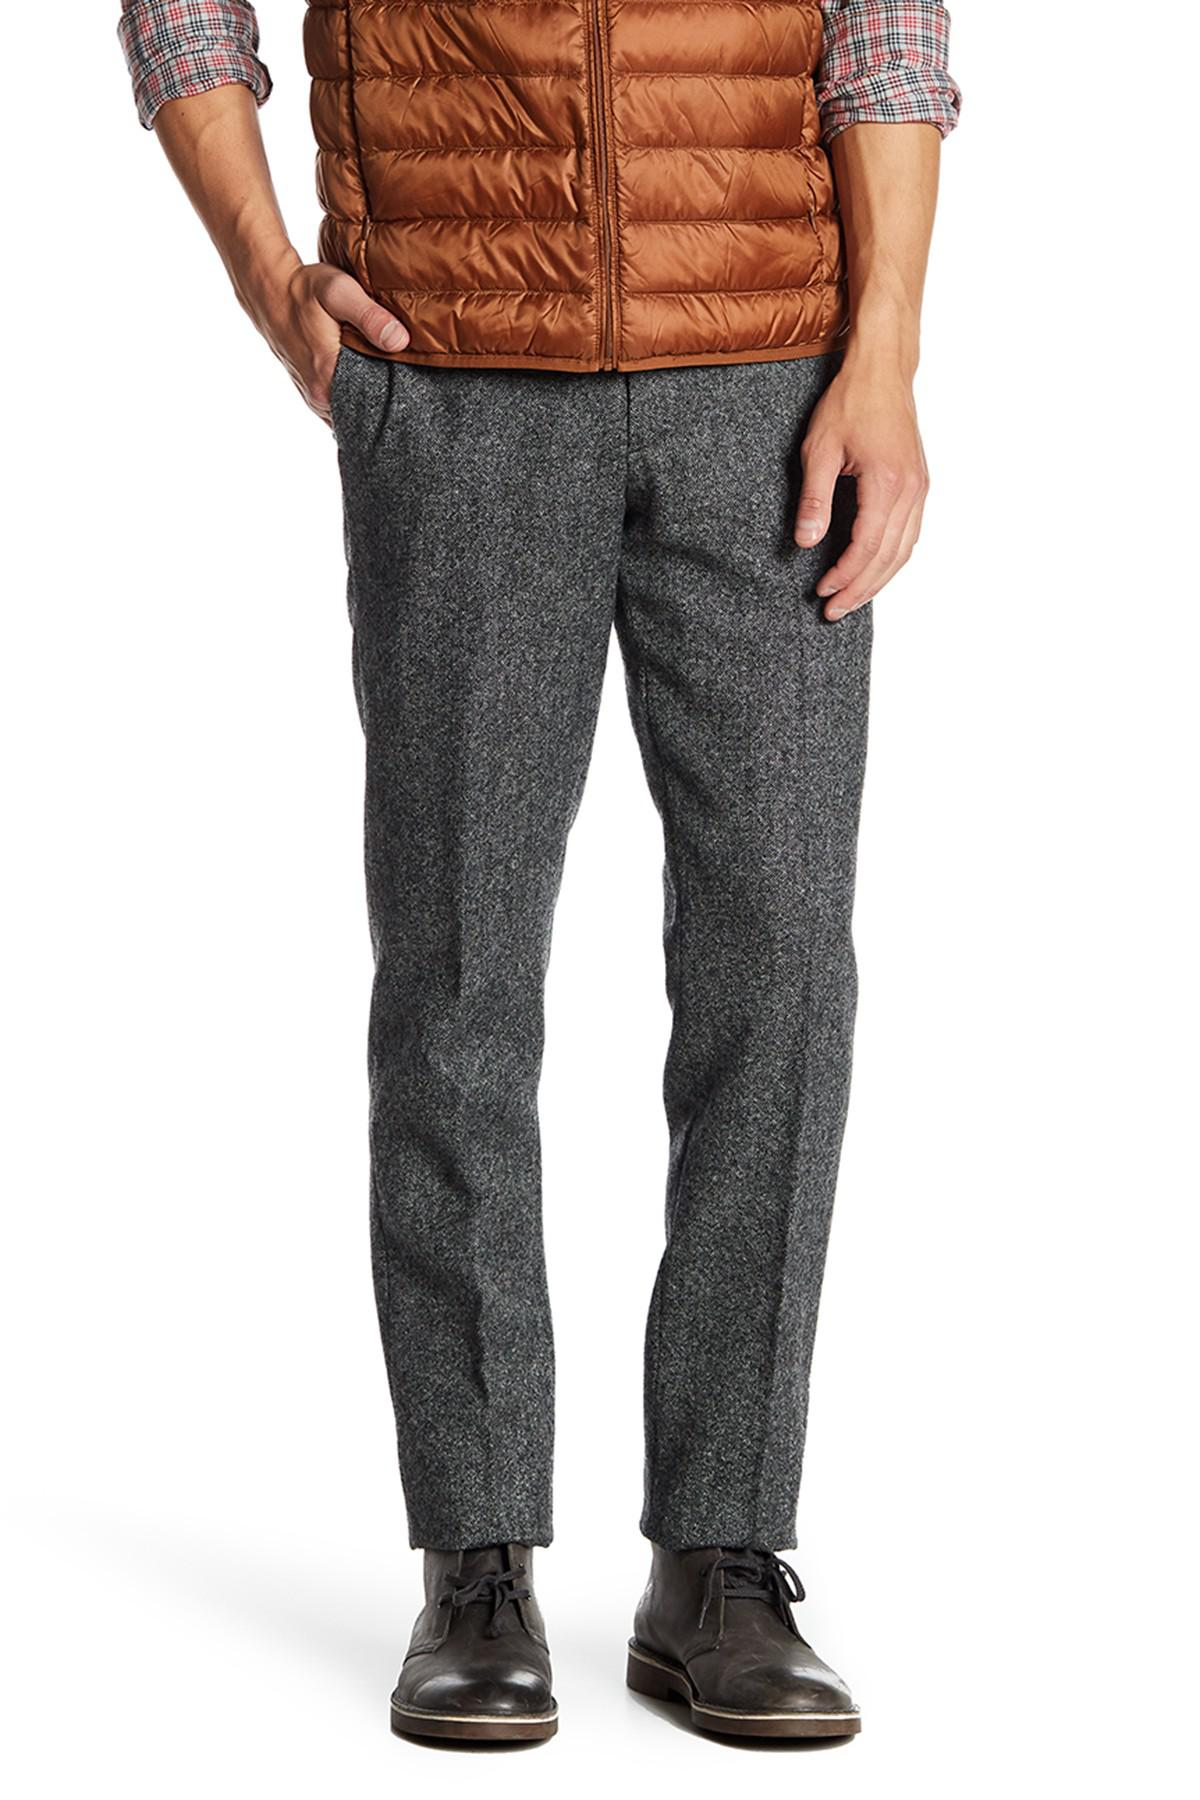 Lyst Bonobos The Foundation Italian Wool Suit Pants 37